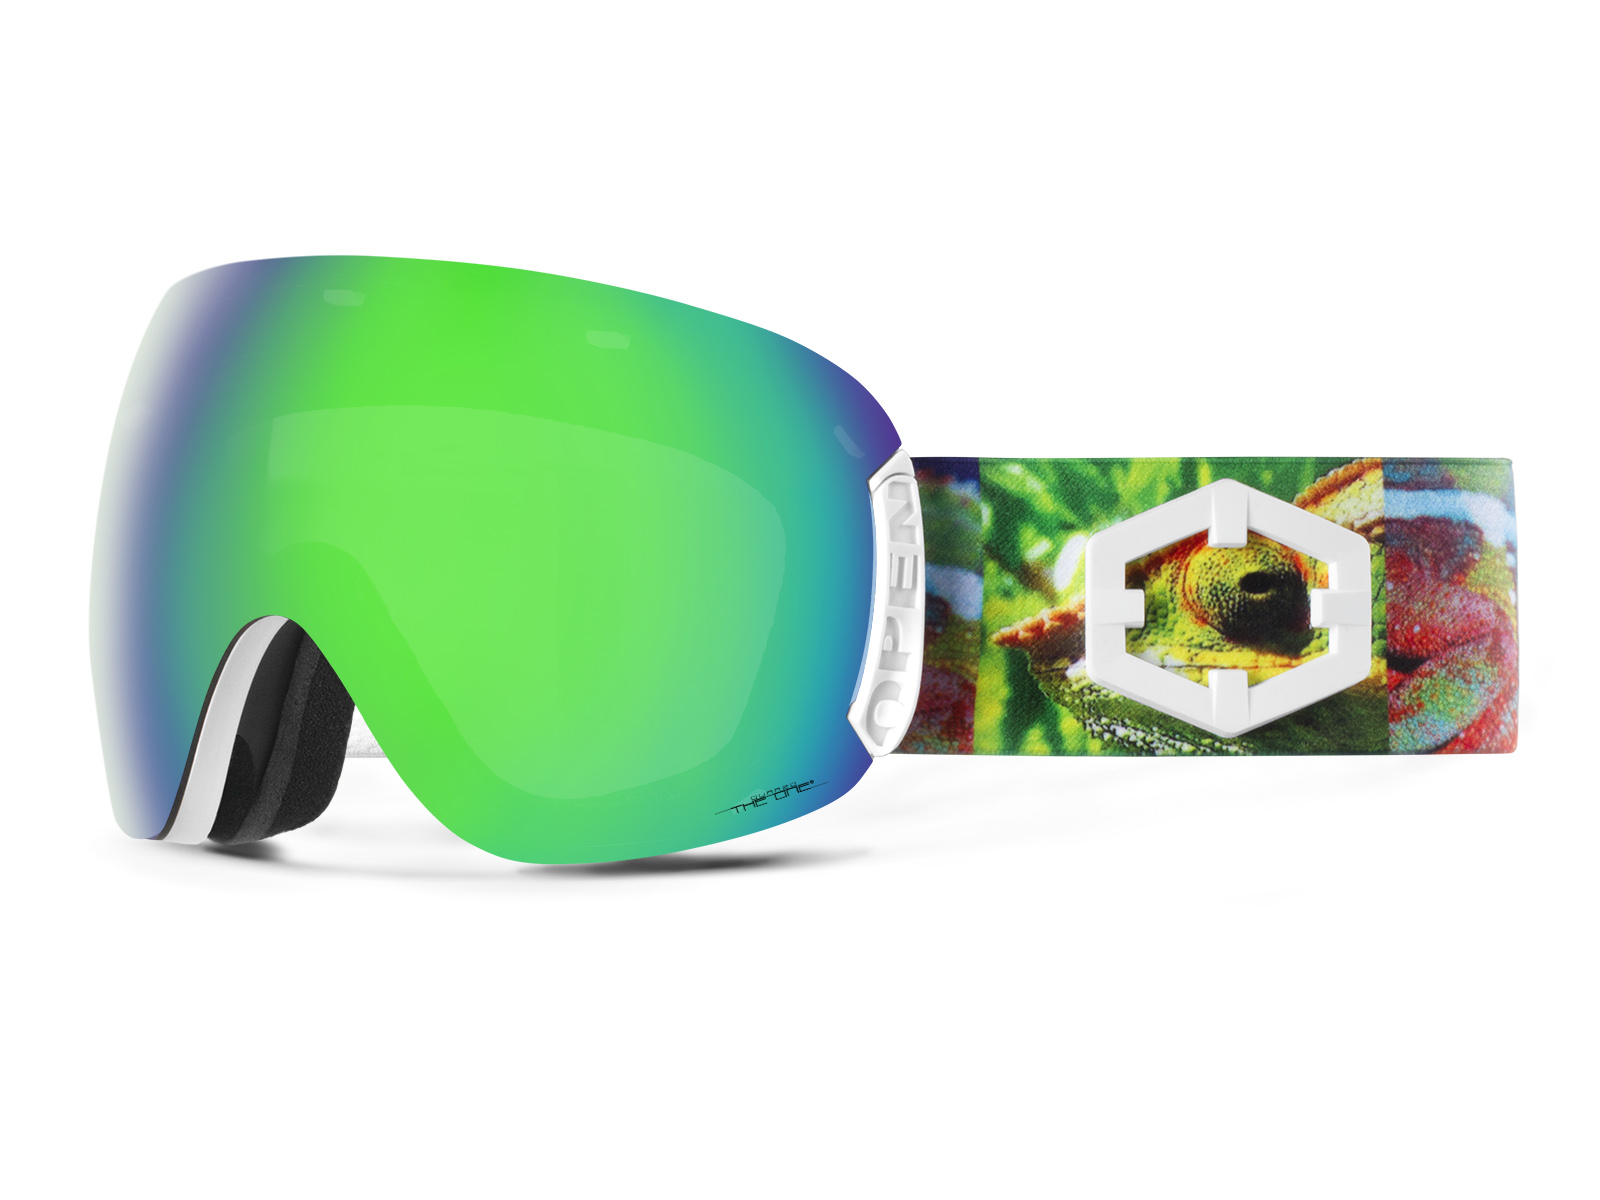 OPEN CHAMELEON THE ONE QUARZO GOGGLE